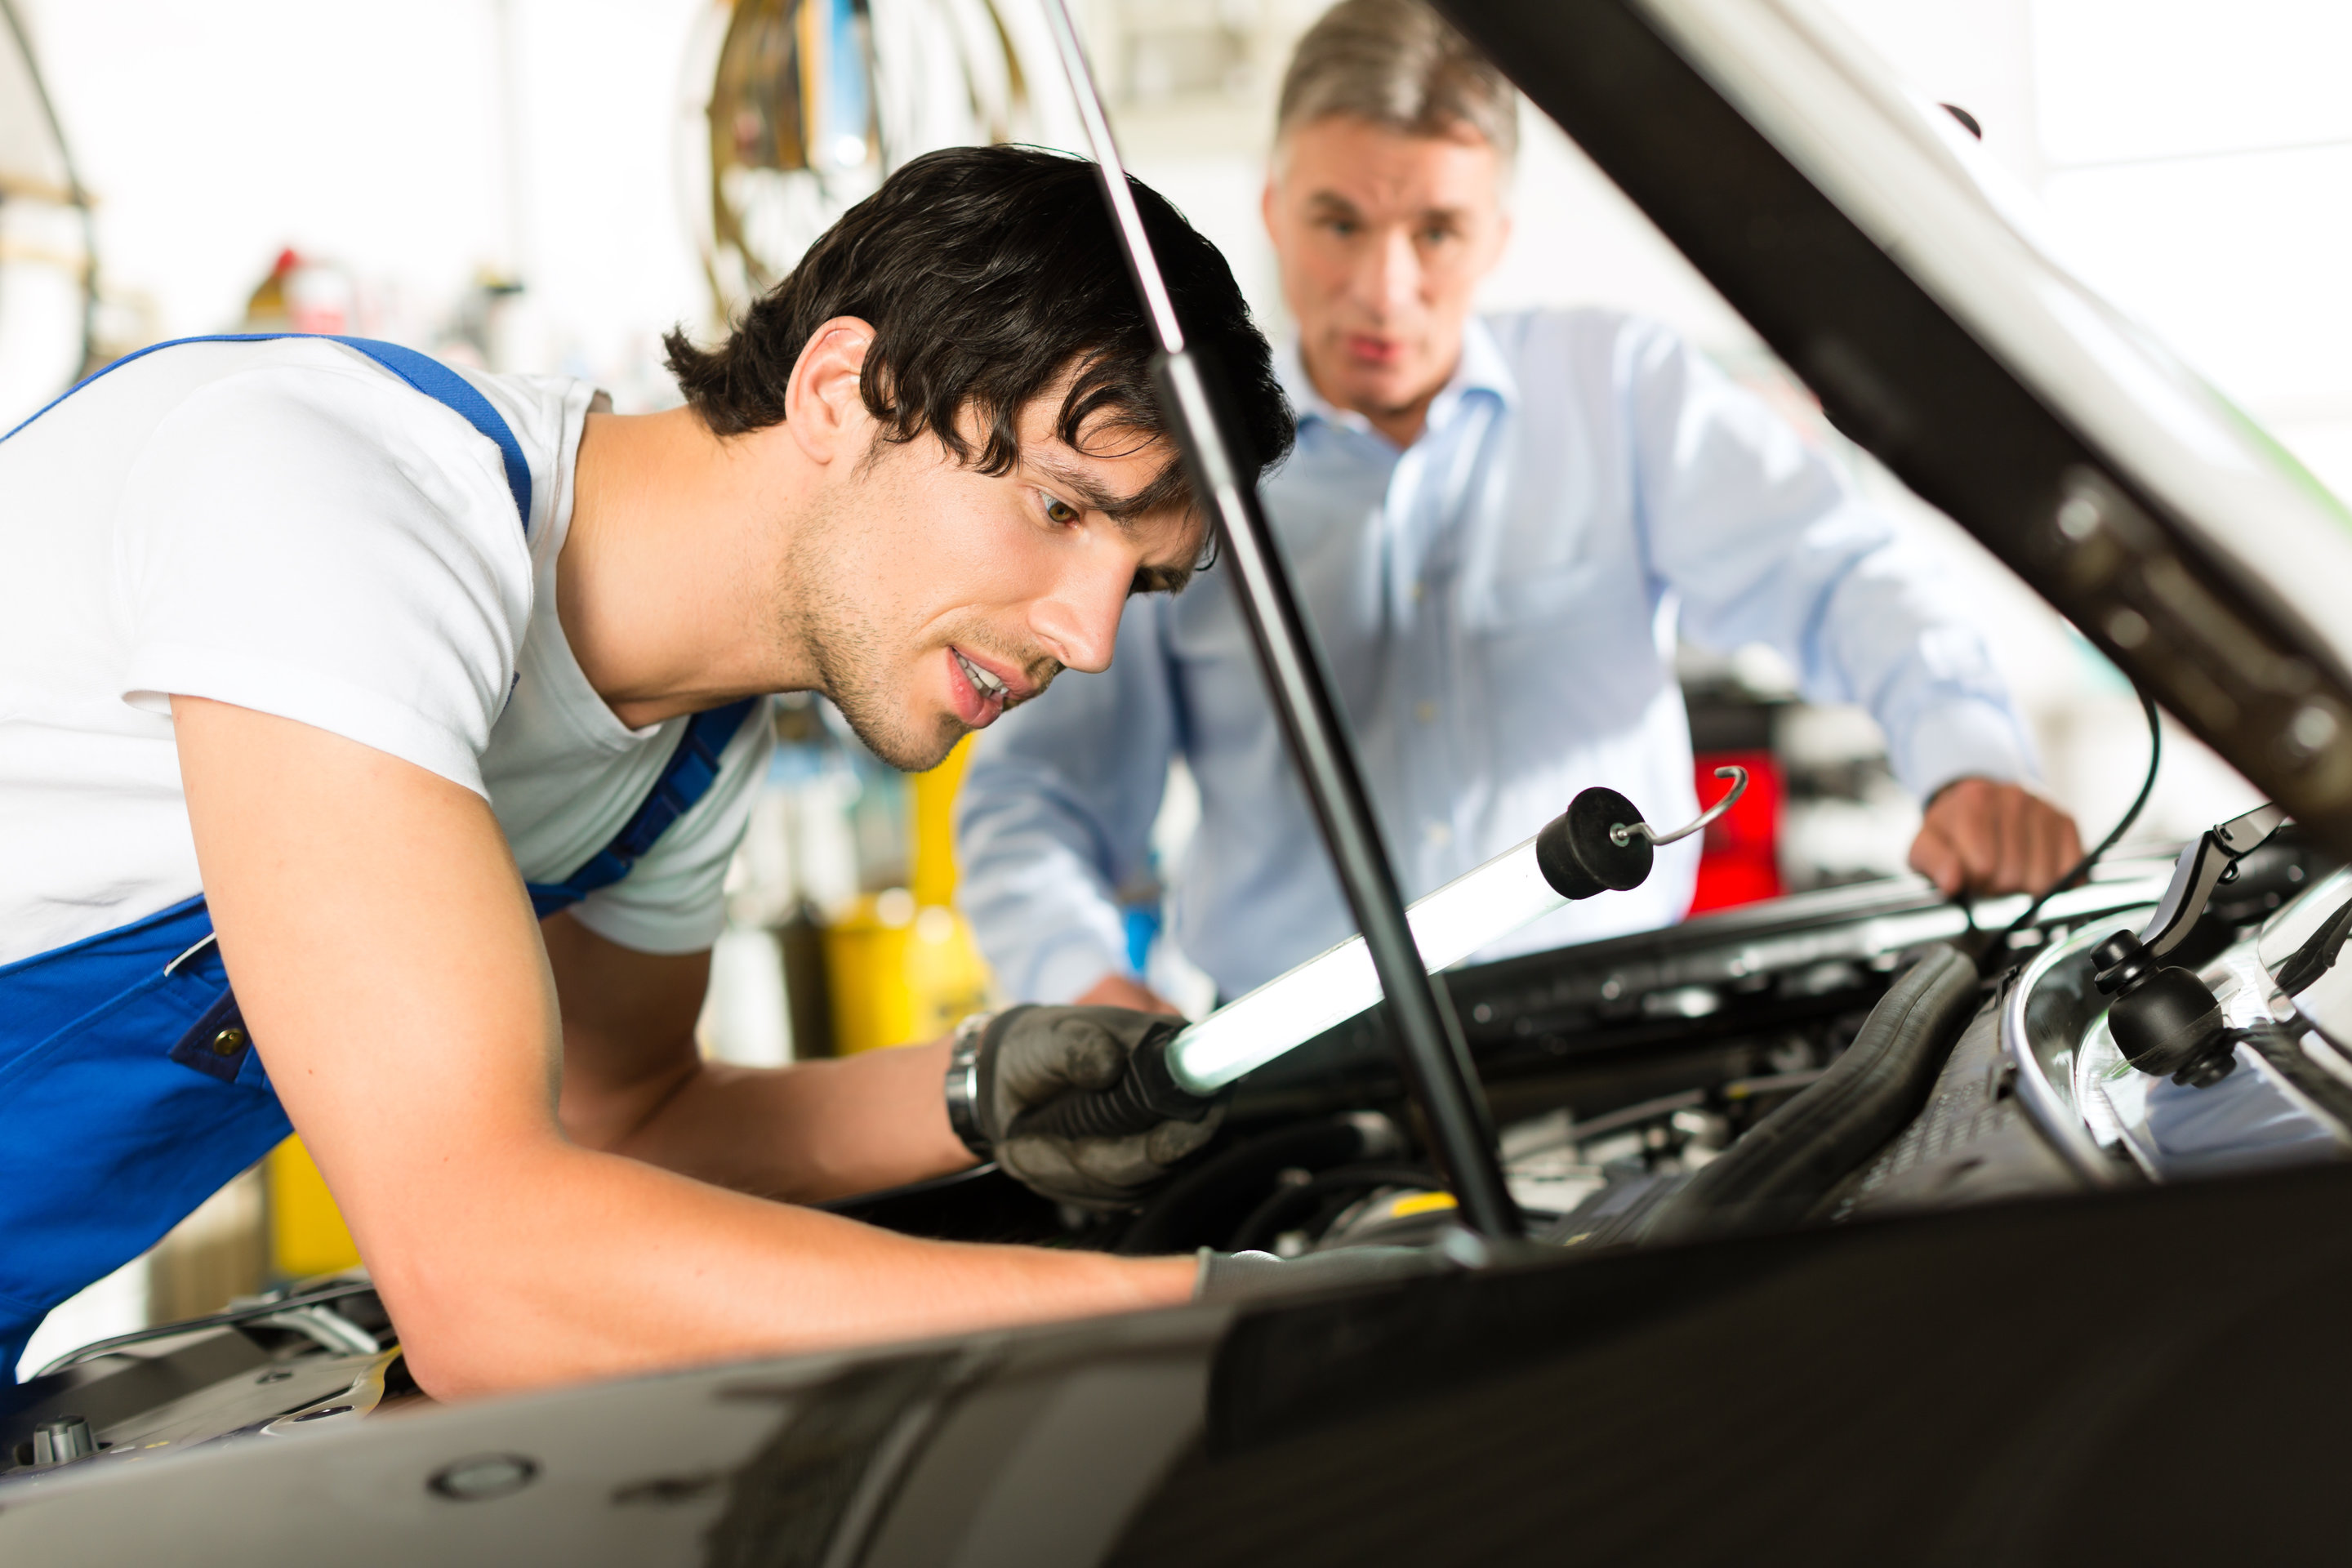 Mature client and young mechanic looking under car hood at engine with lamp